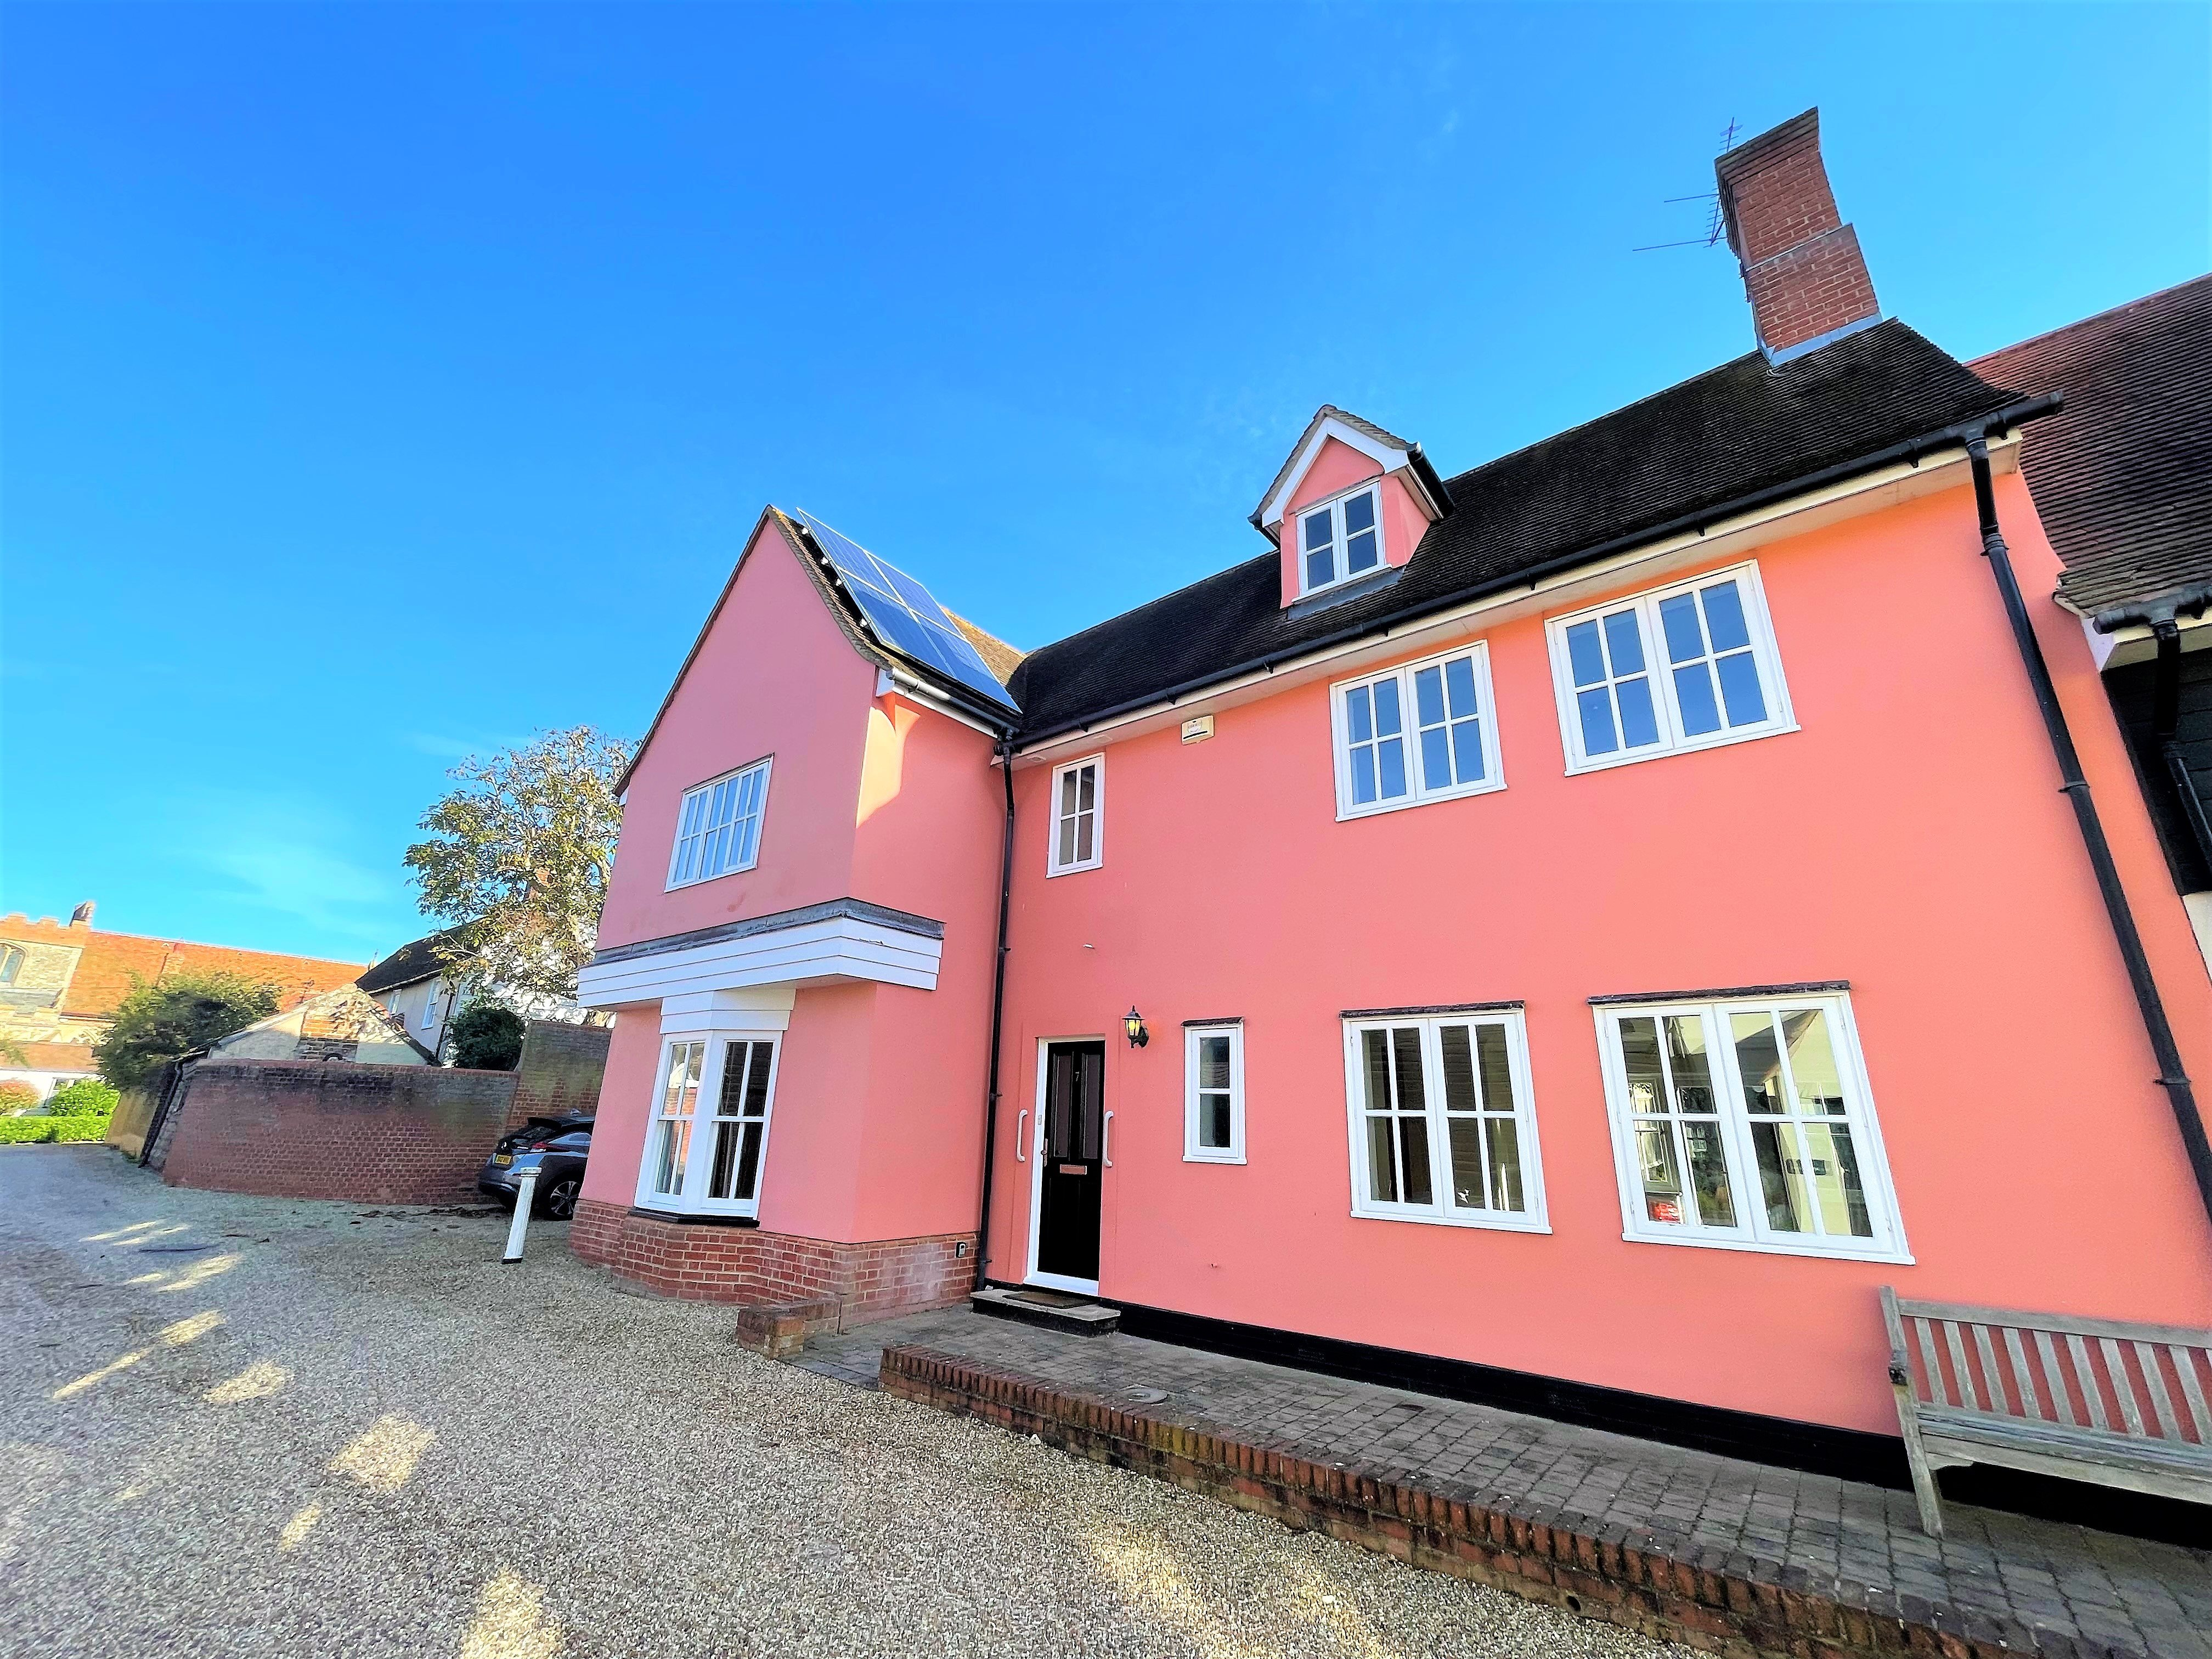 4 bed semi-detached house to rent in Stebbing, Dunmow, CM6